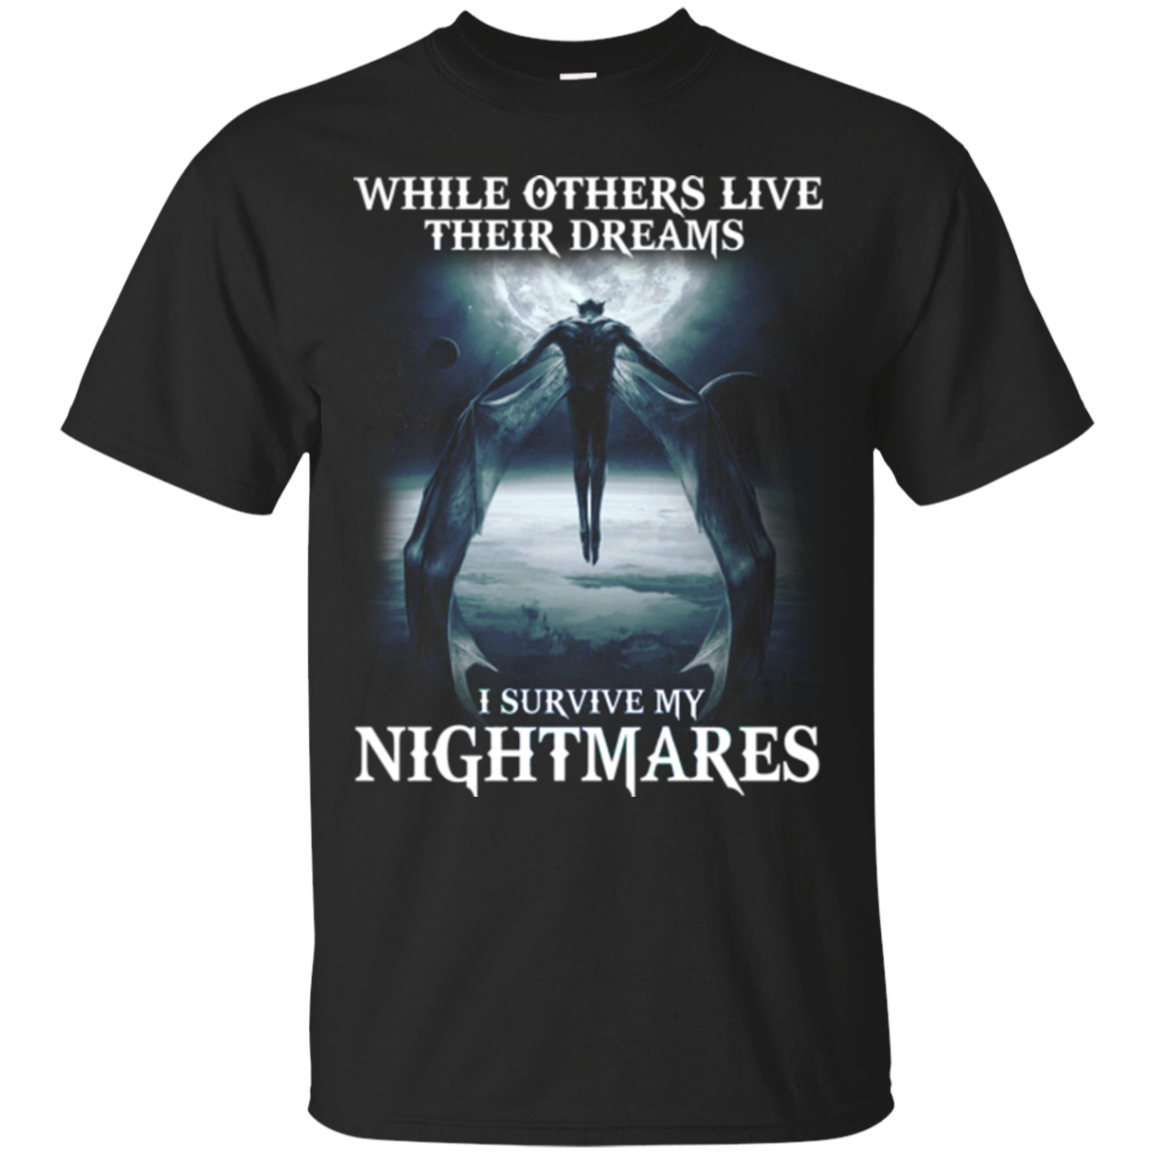 American Horror Story Shirts I Survive Nightmares